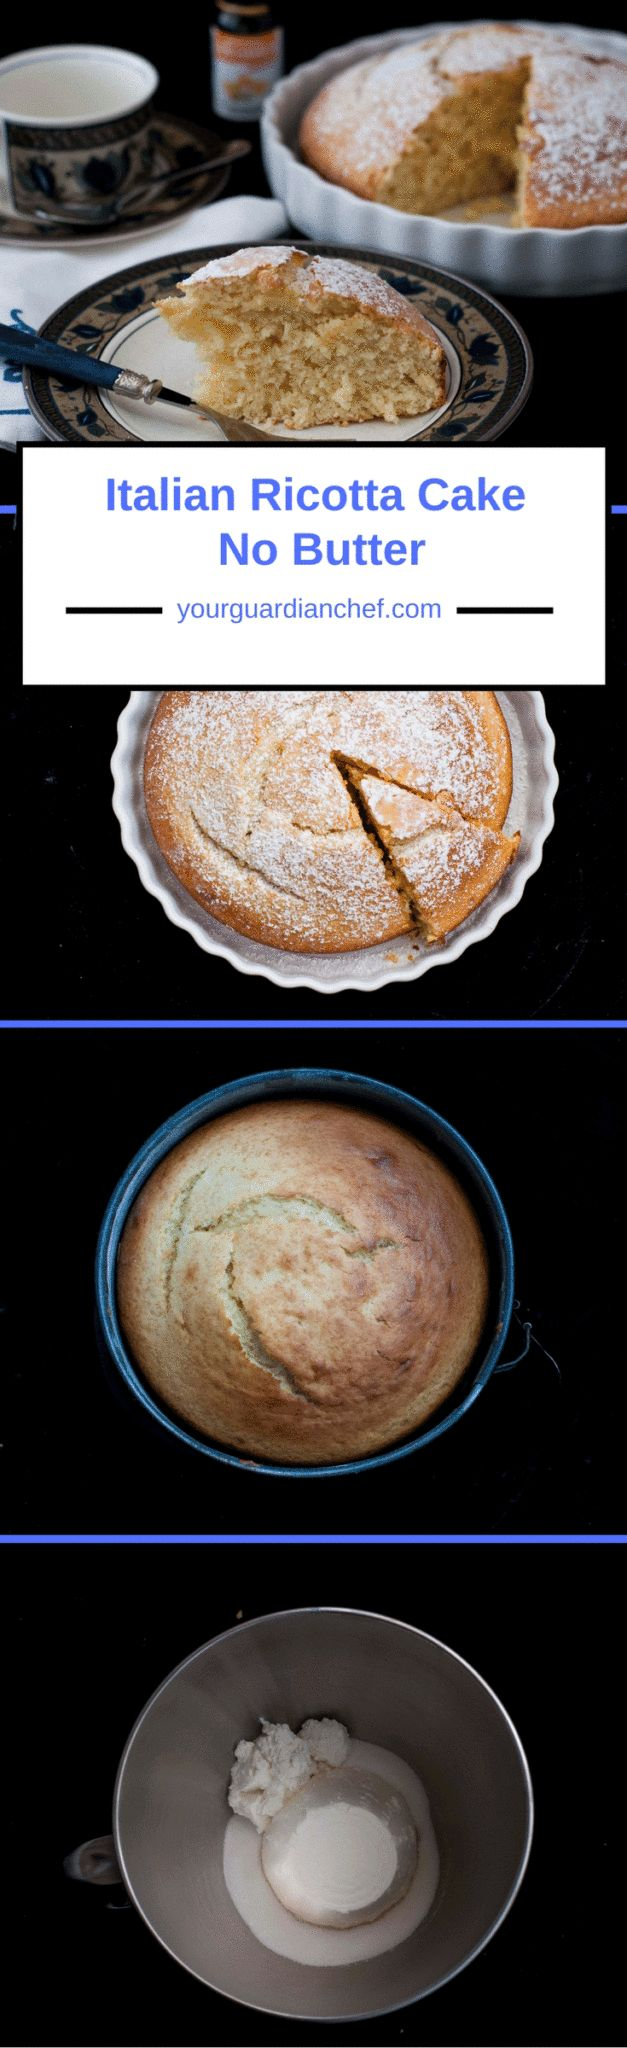 This is an old Italian ricotta cake no butter recipe from the wartime when butter was scarce. It is not a creamy cake similar to the American cheesecake. Your Guardian Chef #ricotta #nobutter #authentic #Italian #cake